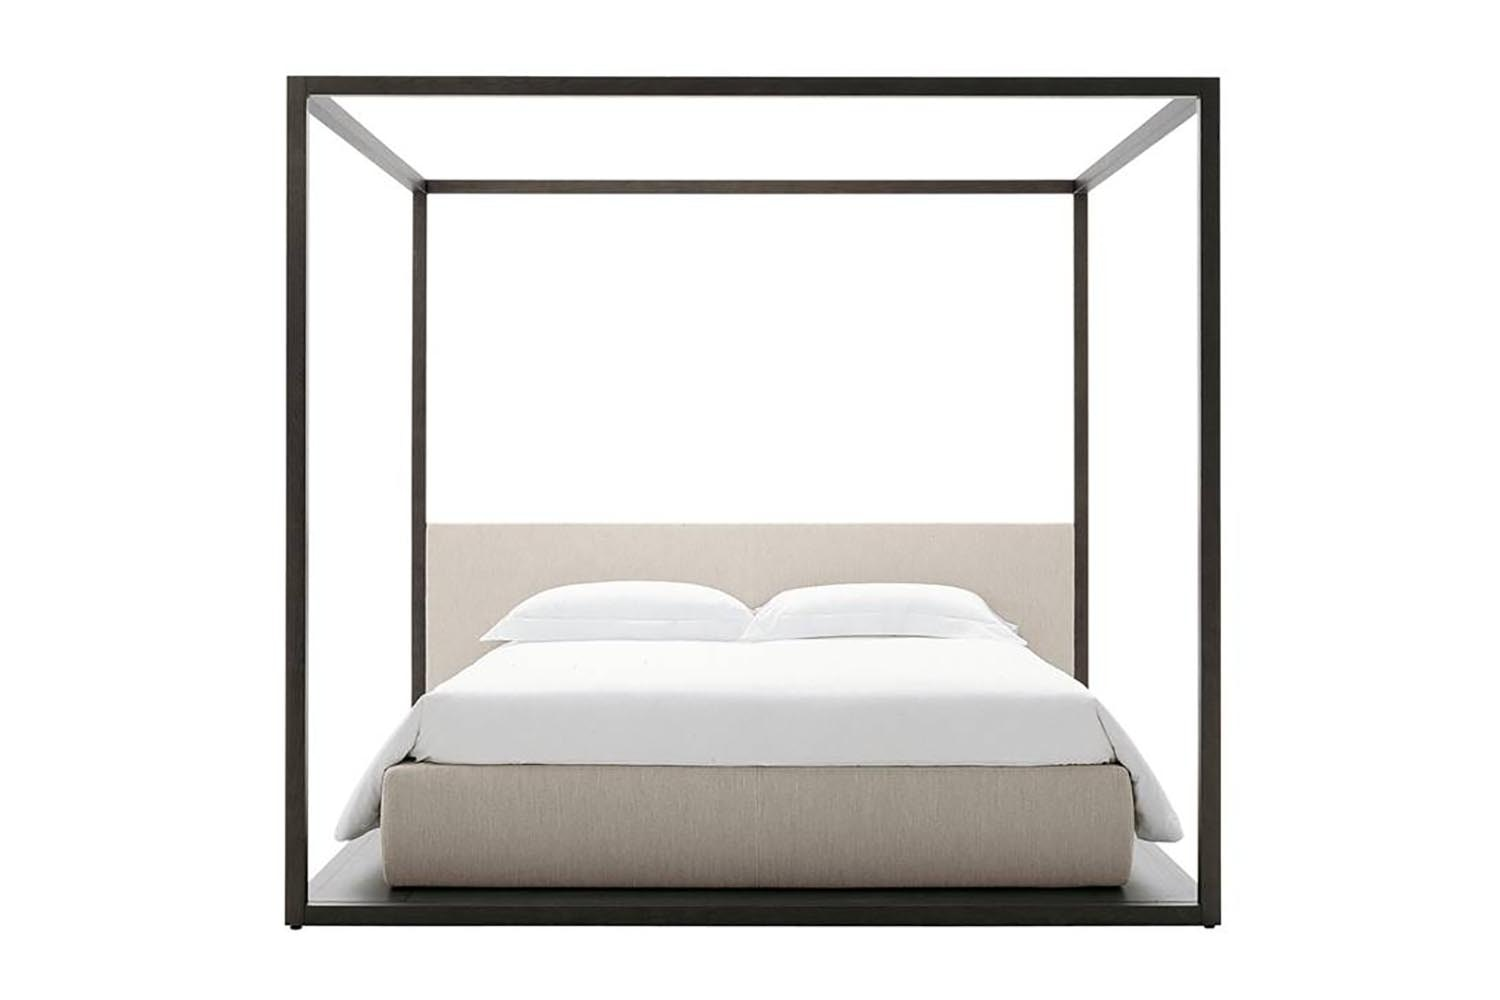 Alcova Bed by Antonio Citterio for Maxalto